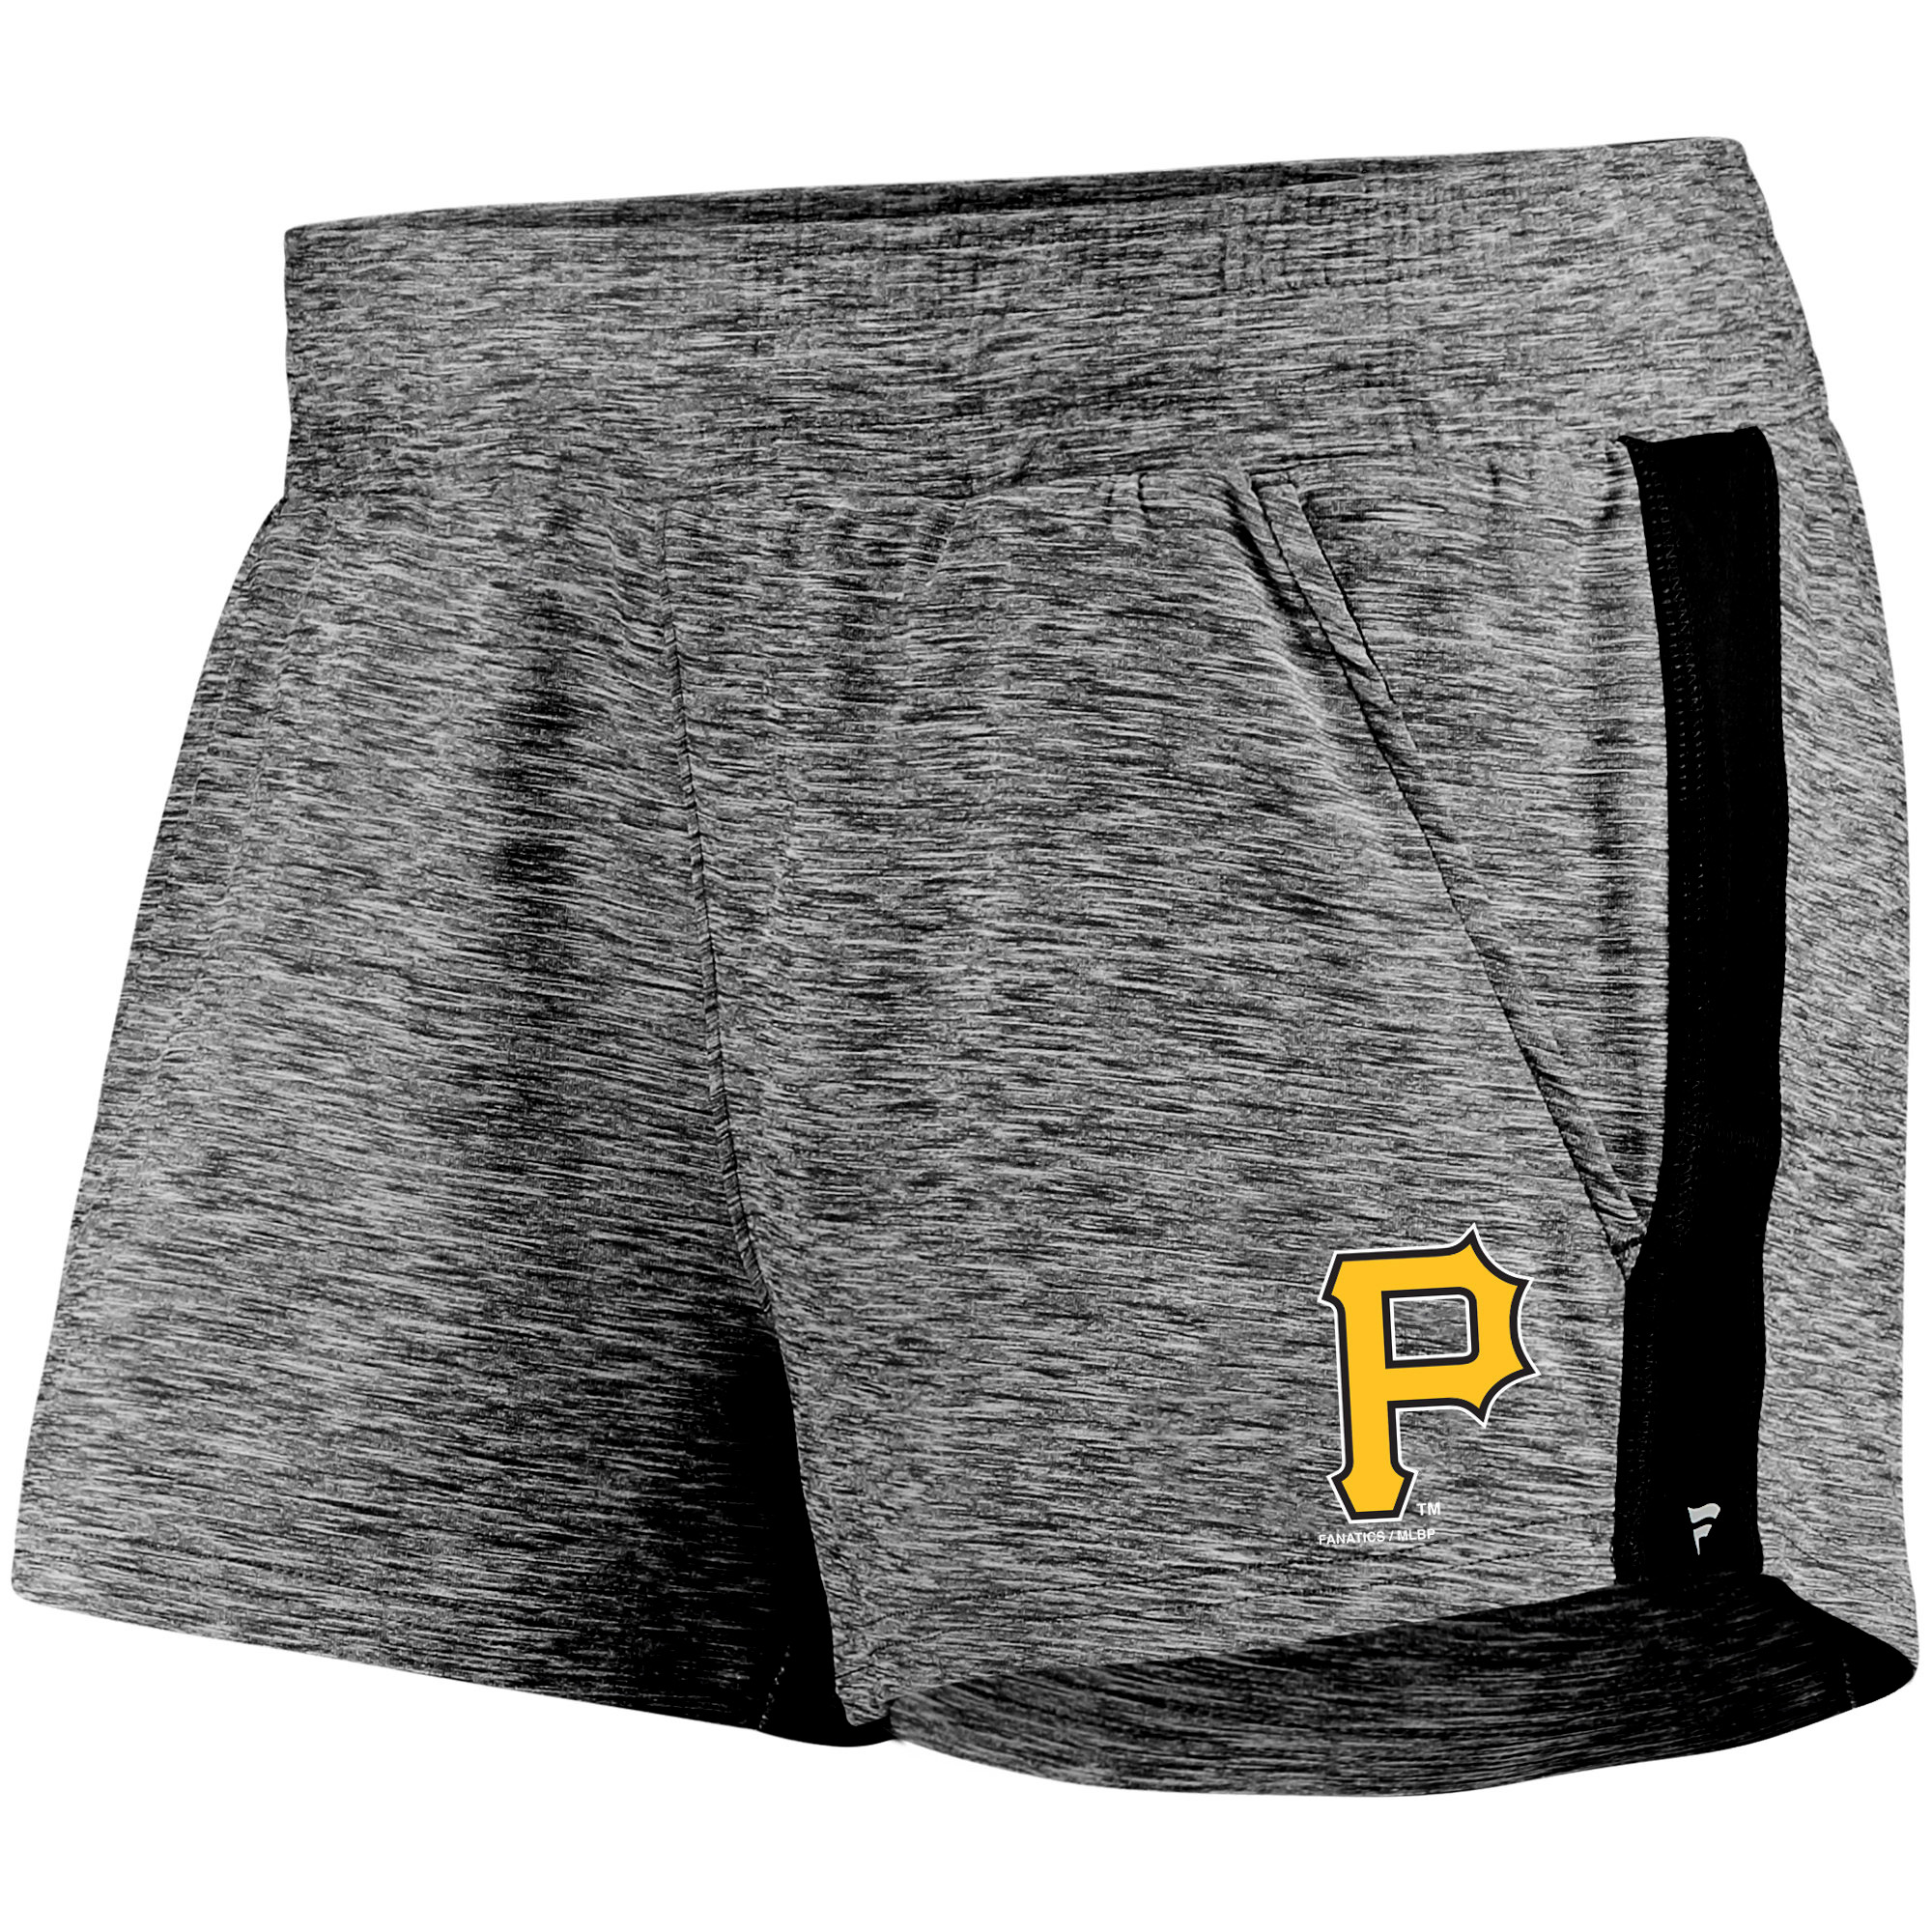 Pittsburgh Pirates Fanatics Branded Women's Made To Move Running Shorts - Heathered Gray/Black